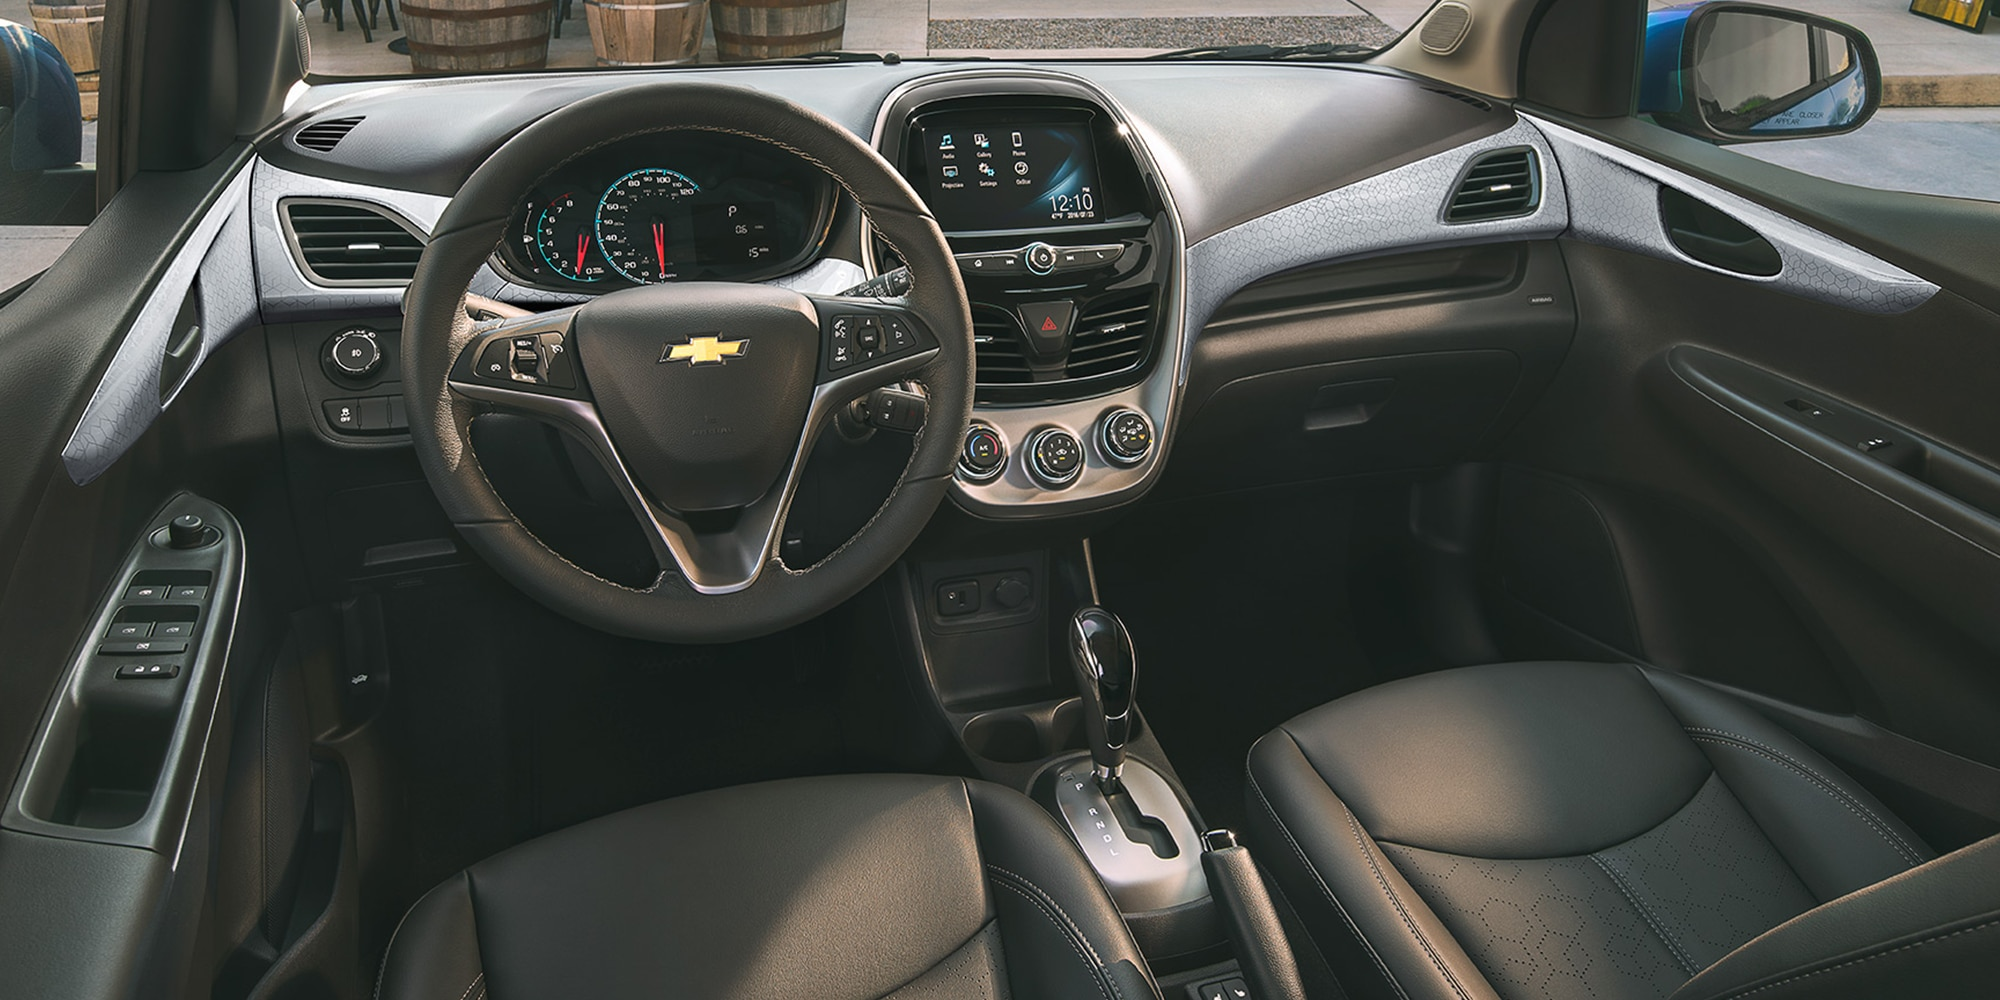 New Chevrolet Spark in Charlottesville, VA